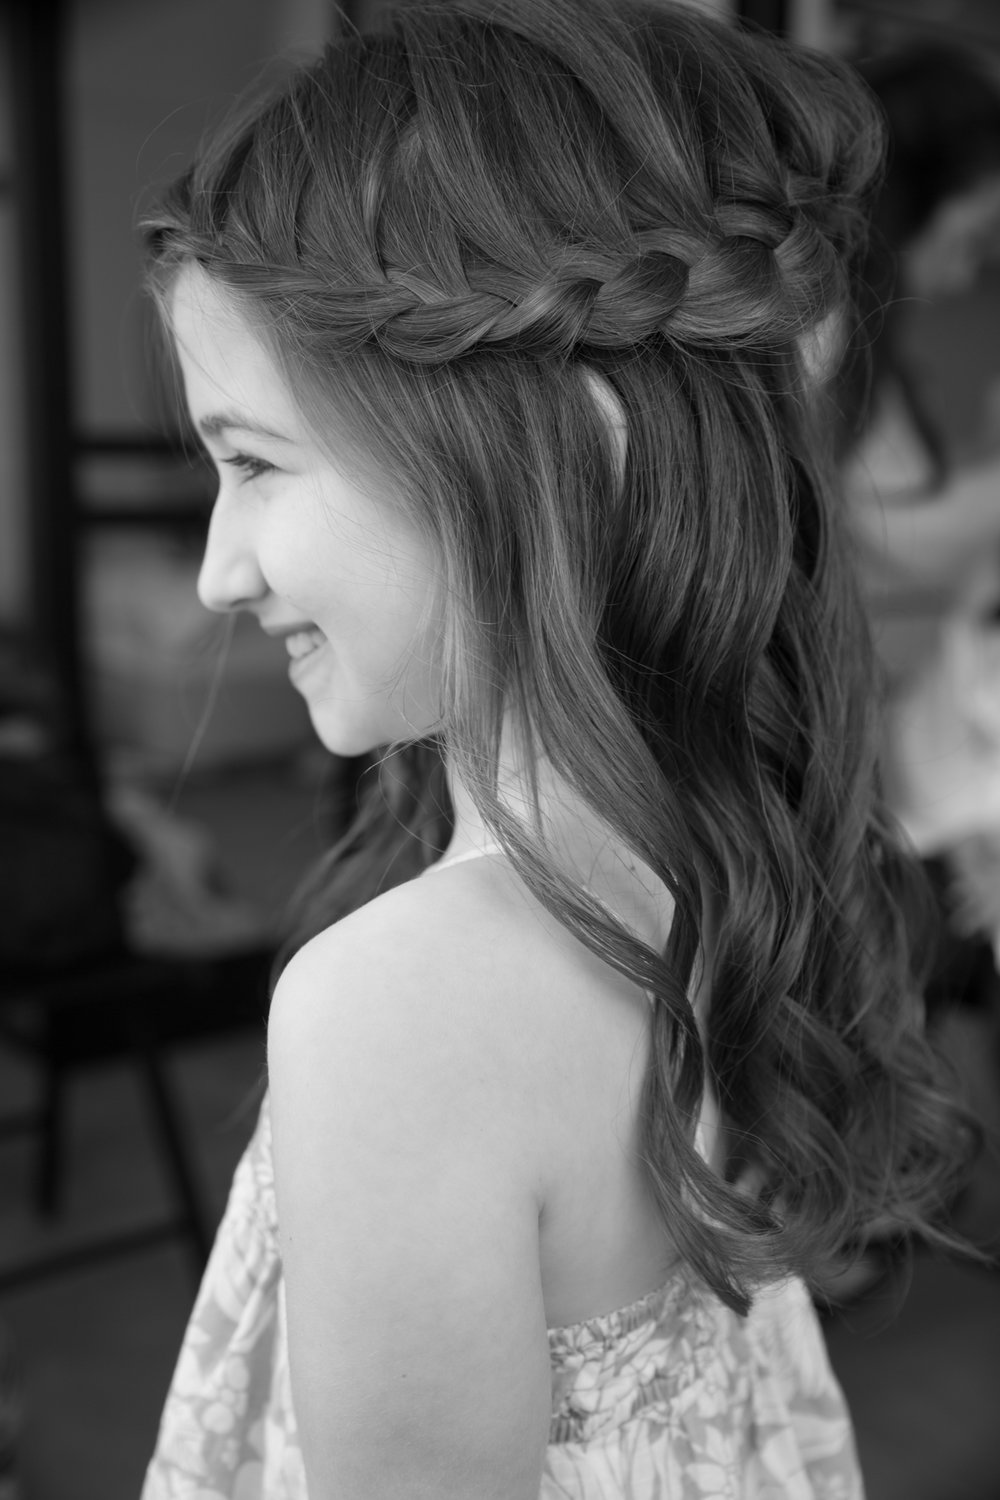 little-girl-getting-ready-wedding.jpg